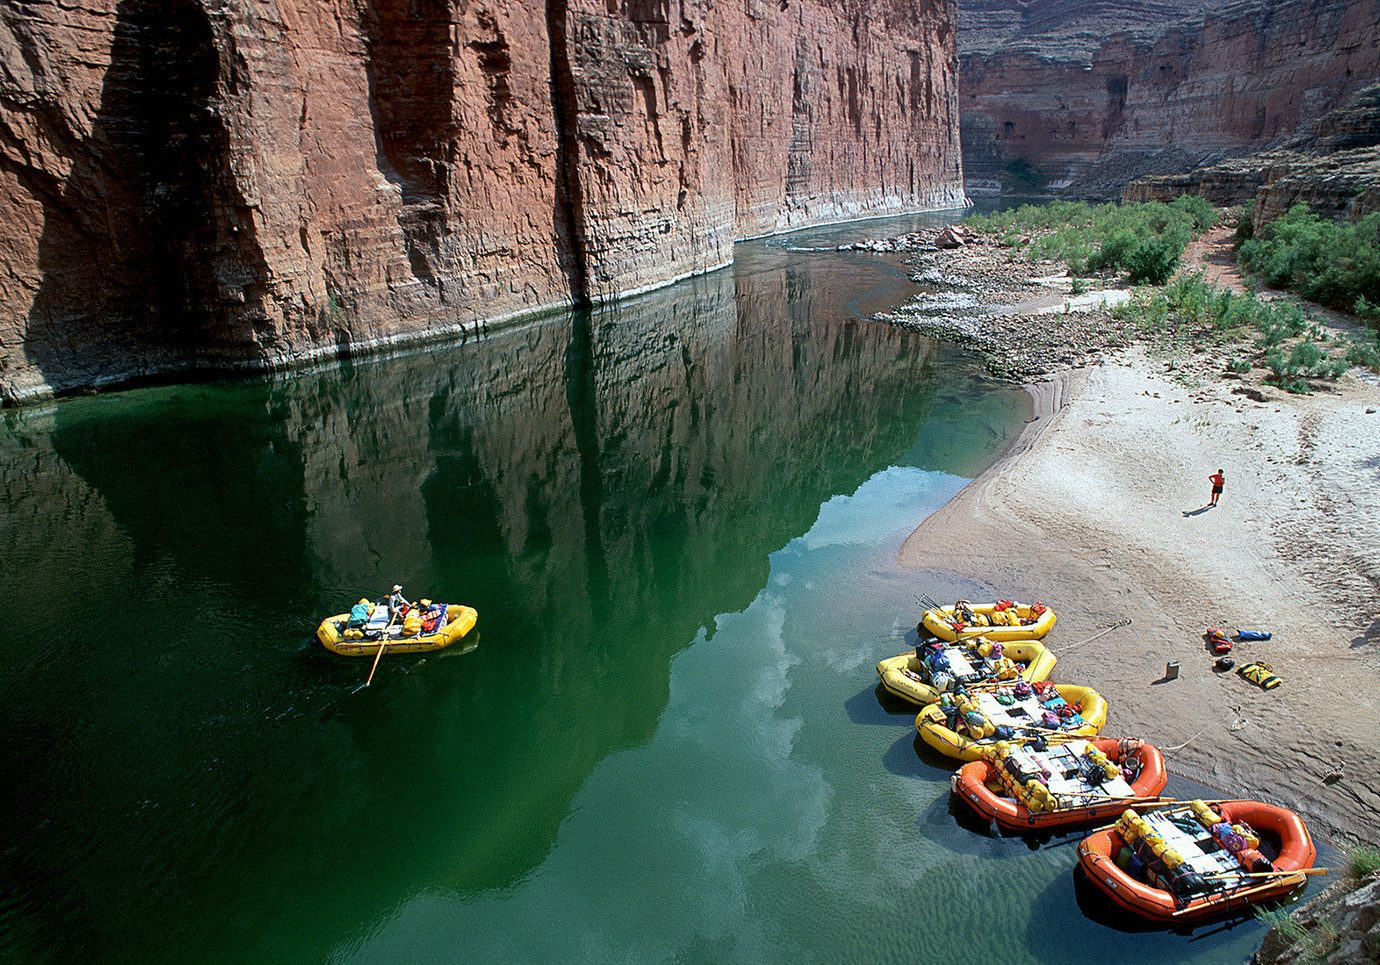 Adventure Countryside Historic Landmarks landscape national park Natural wonders Nature Outdoor Activities Outdoors Raft River Sport Trip Ideas western valley water boating Boat vehicle rapid waterway canyon water sport colored